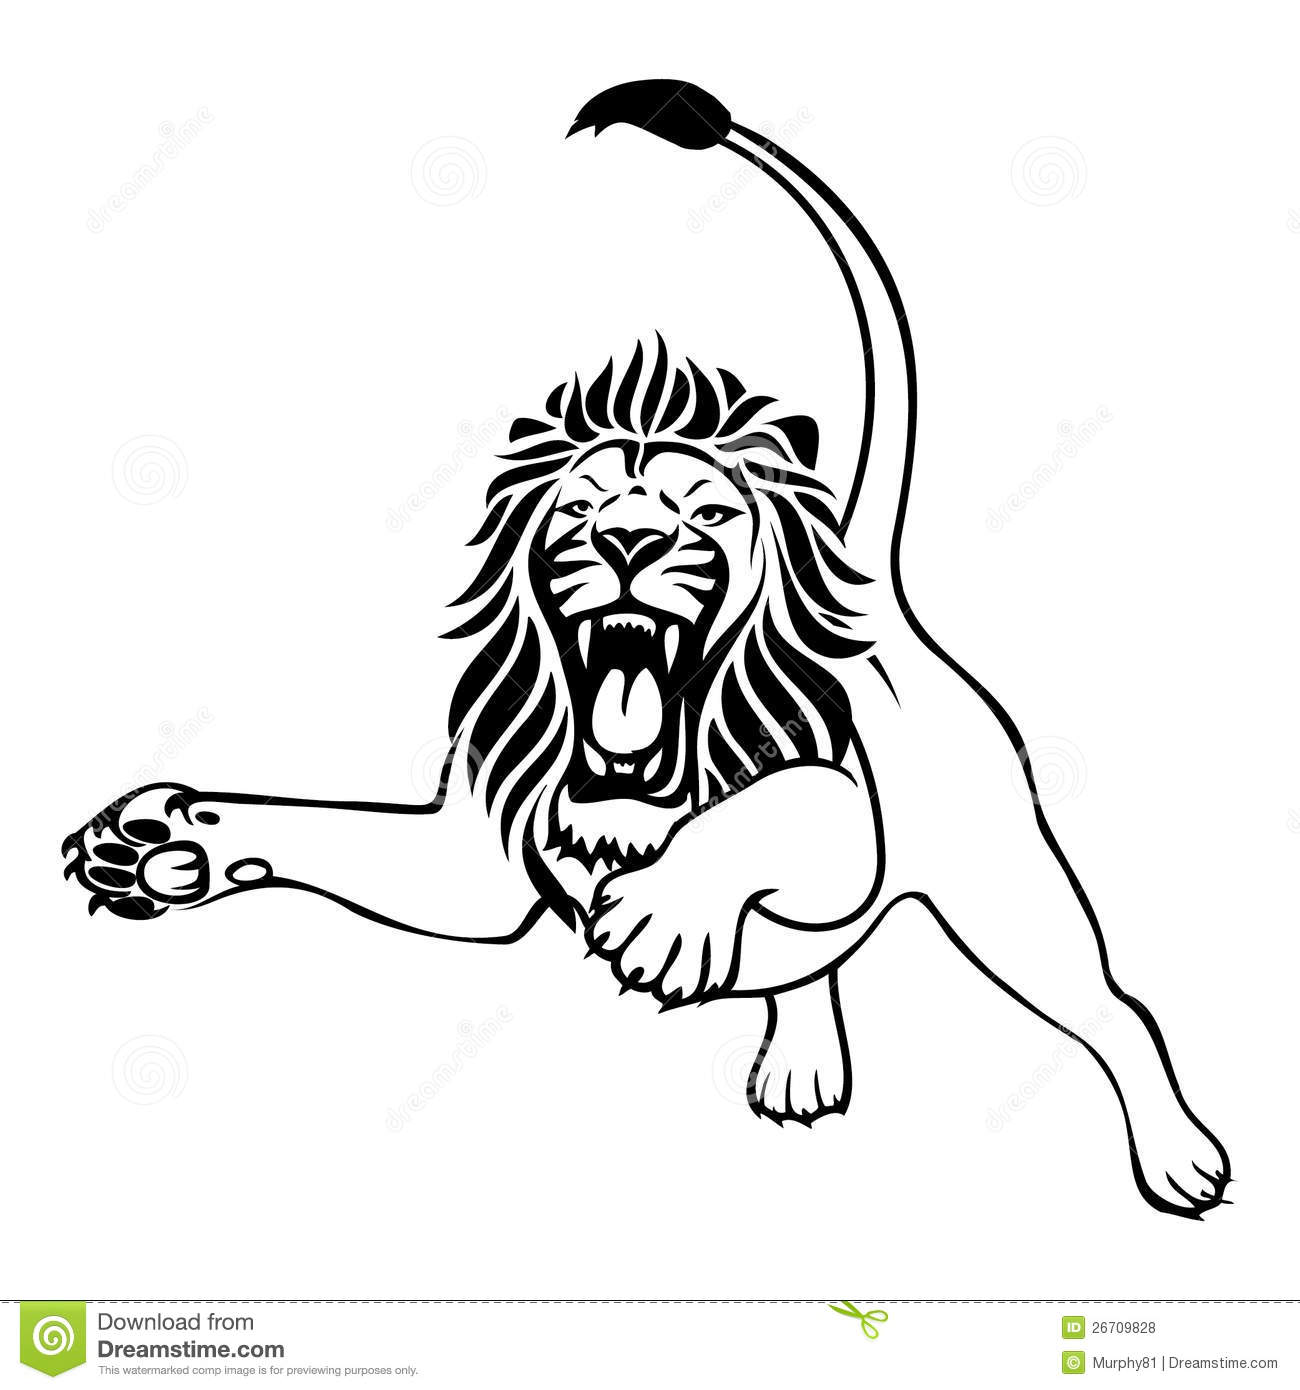 Angry lion attack stock vector. Illustration of mammal